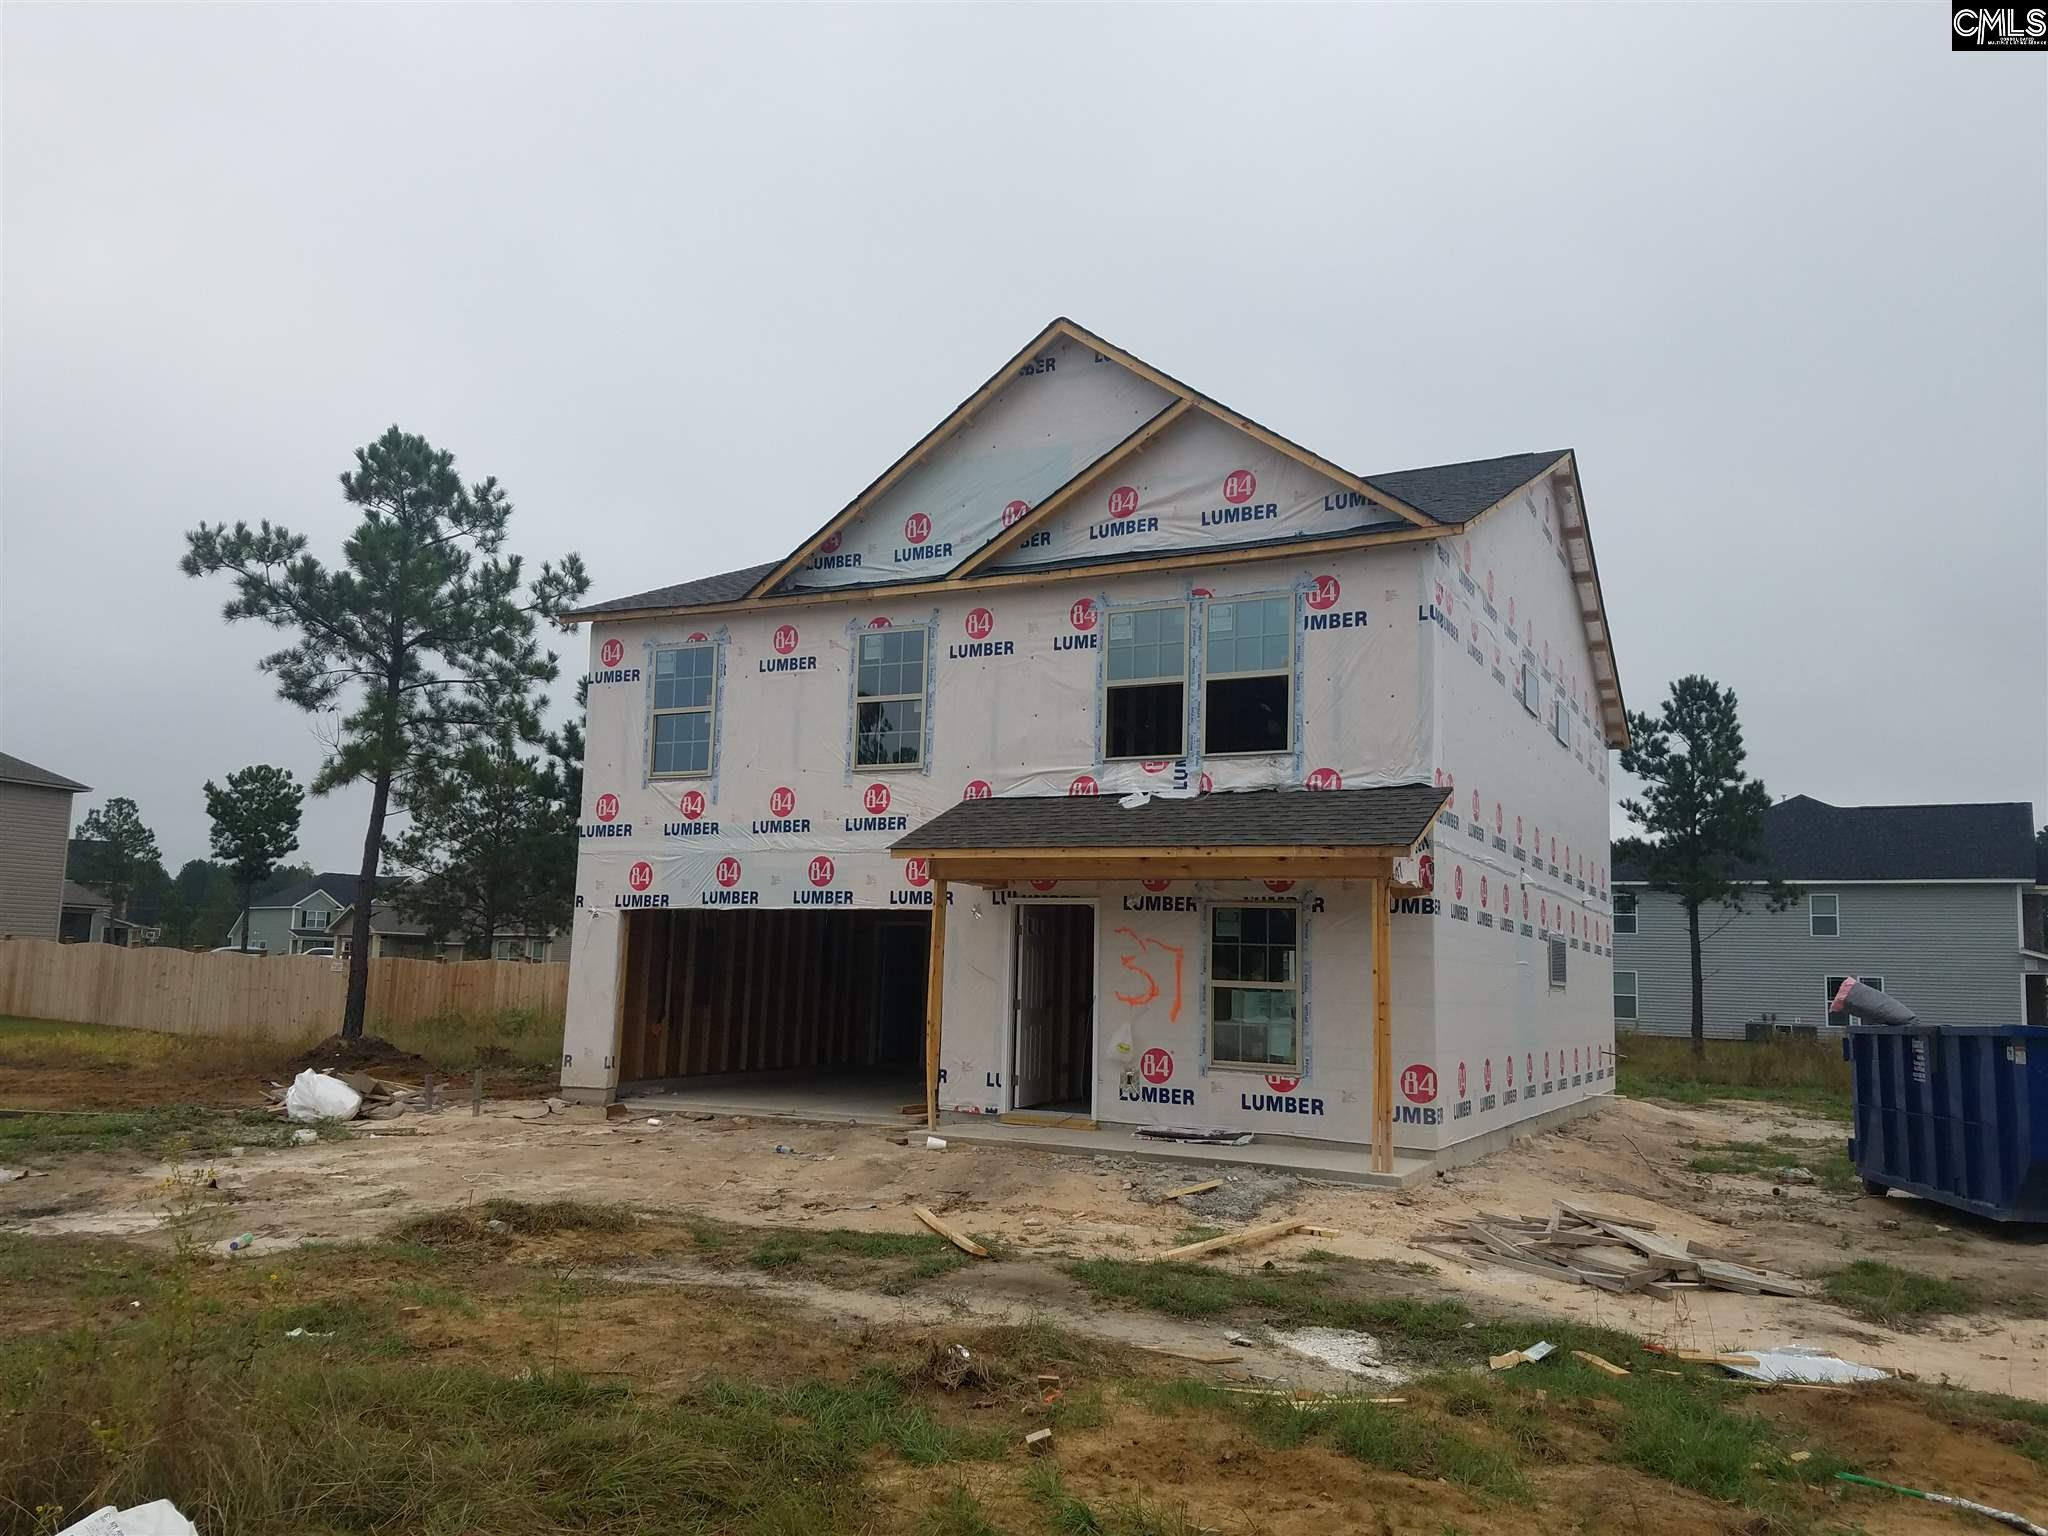 57  Lillie Elgin, SC 29045